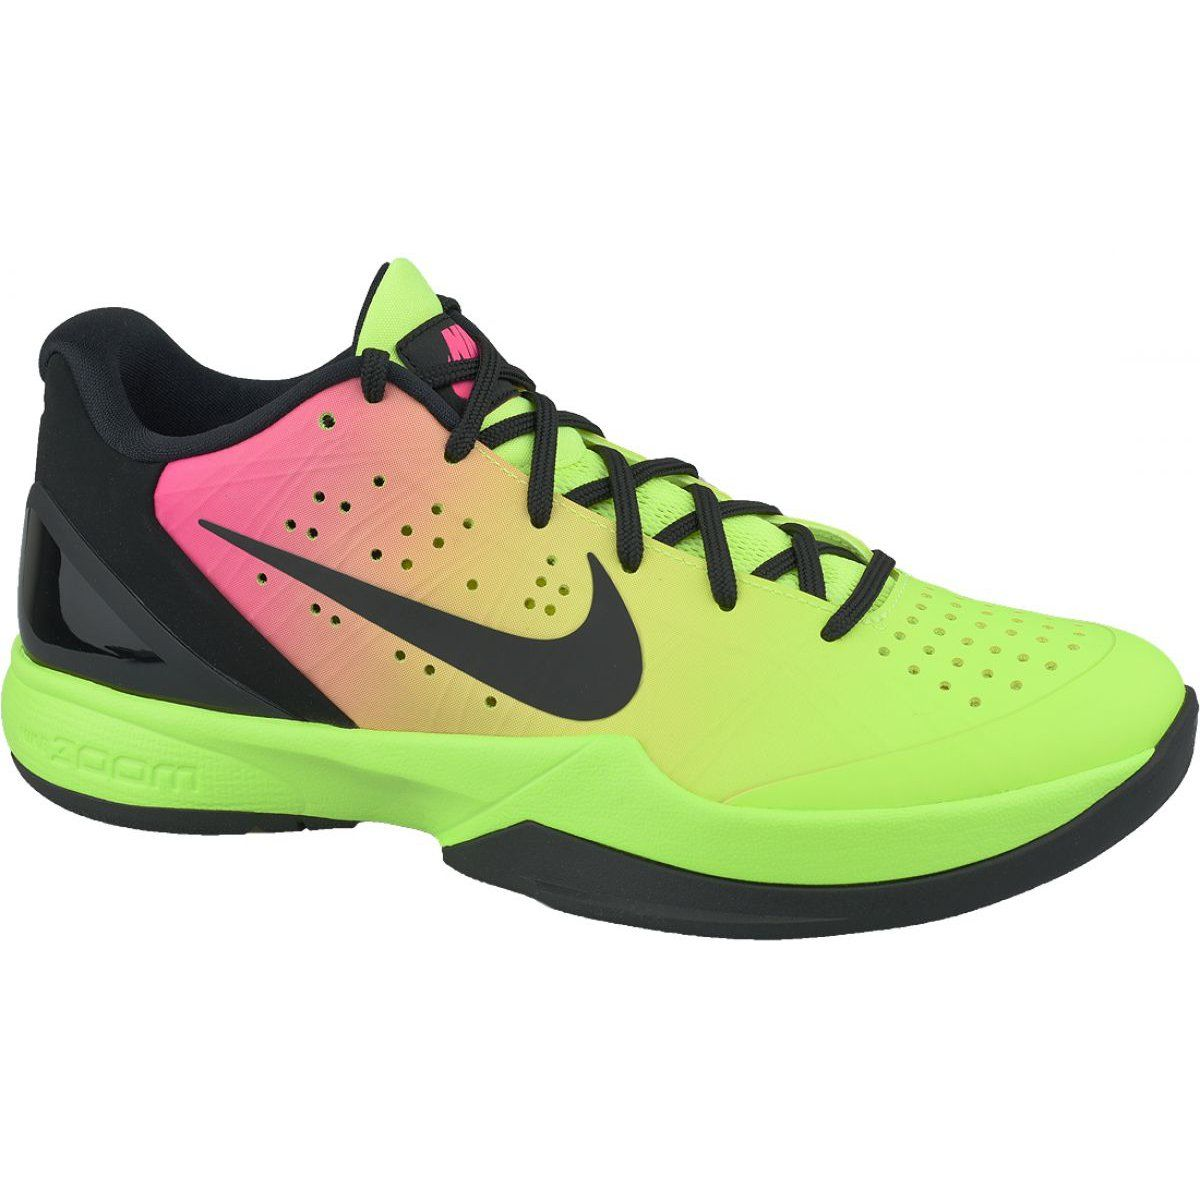 Buty Nike Air Zoom Hyperattack M 881485 999 Zolte Nike Air Zoom Nike Mens Nike Shoes